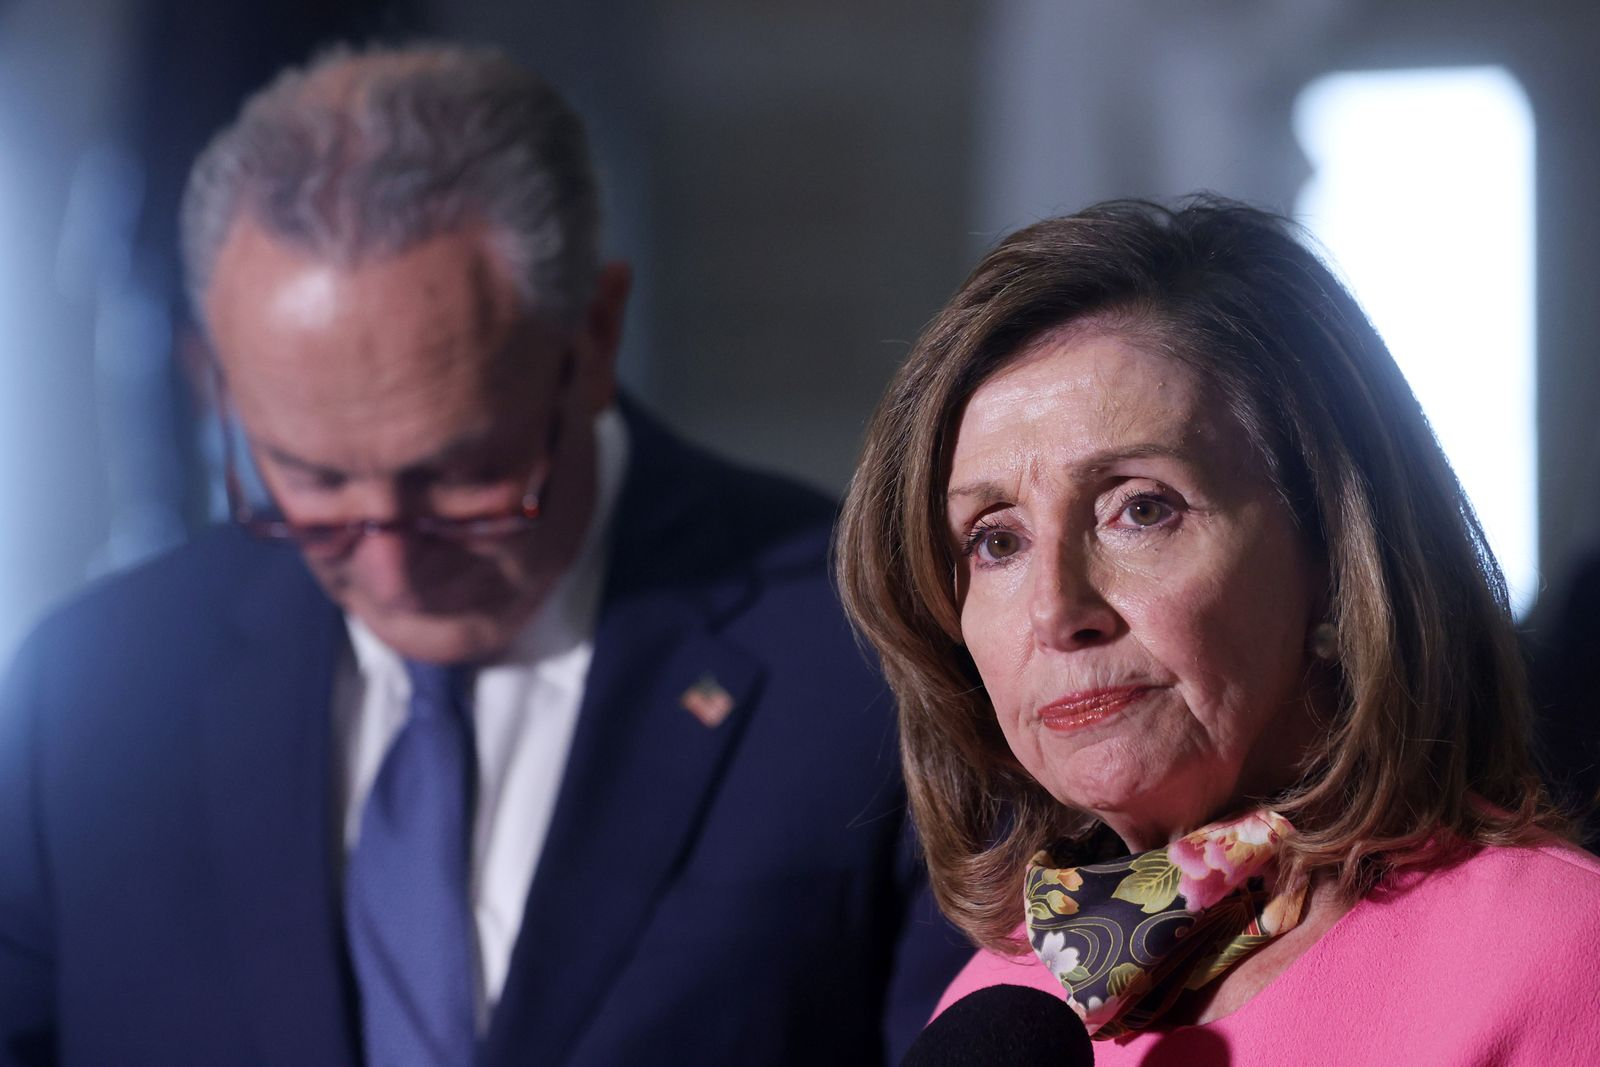 U.S. House Speaker Pelosi and Senate Minority Leader Chuck Schumer (D-NY) speak to reporters after their coronavirus relief negotiations with Mnuchin and Meadows at the U.S. Capitol in Washington